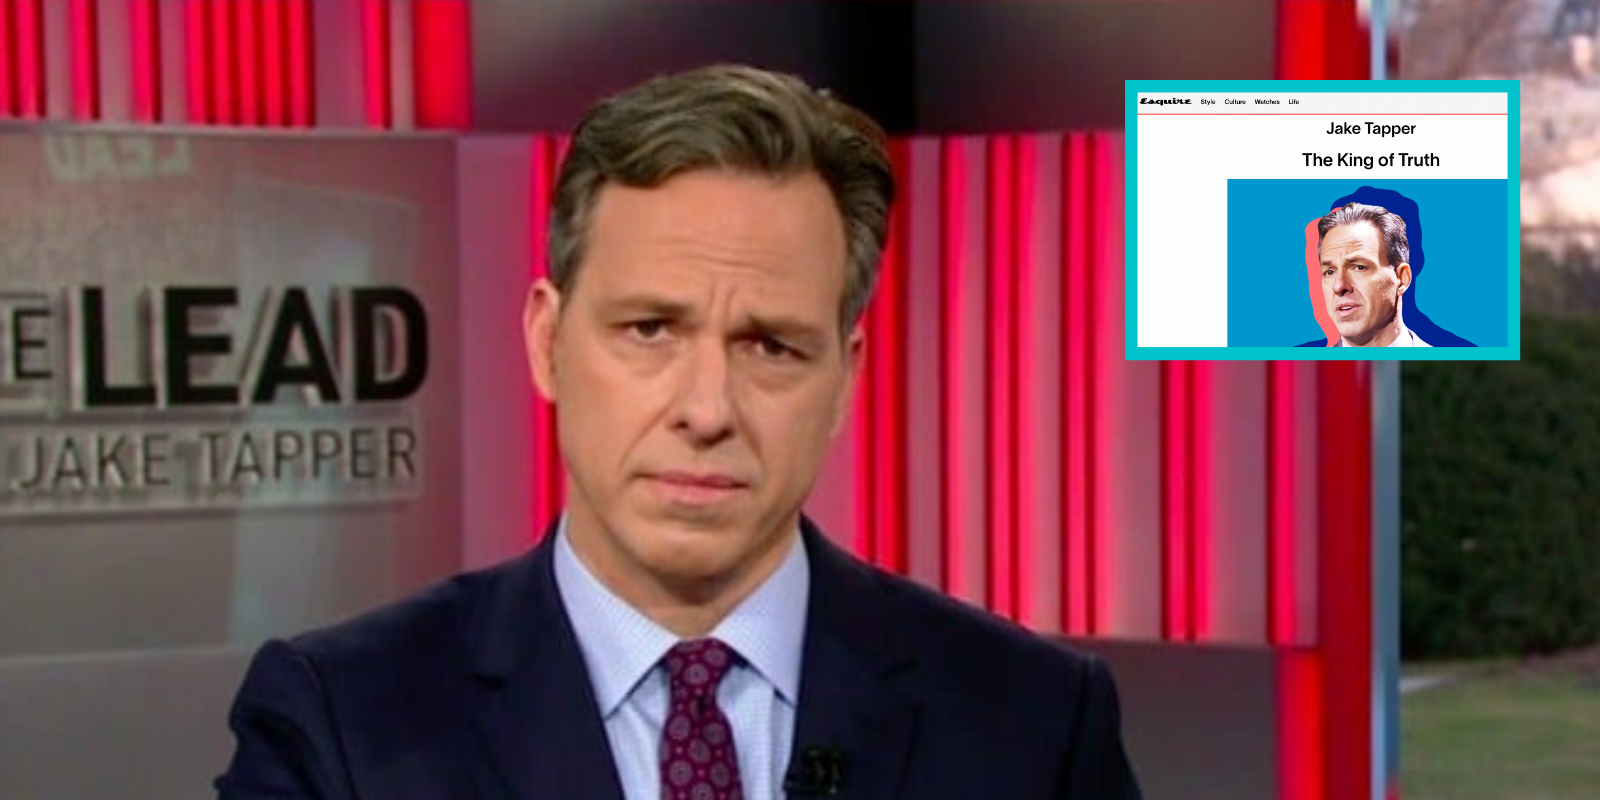 Esquire names Jake Tapper, a Russiagate conspiracy theorist who suppressed Hunter Biden bombshell, 'King of Truth'